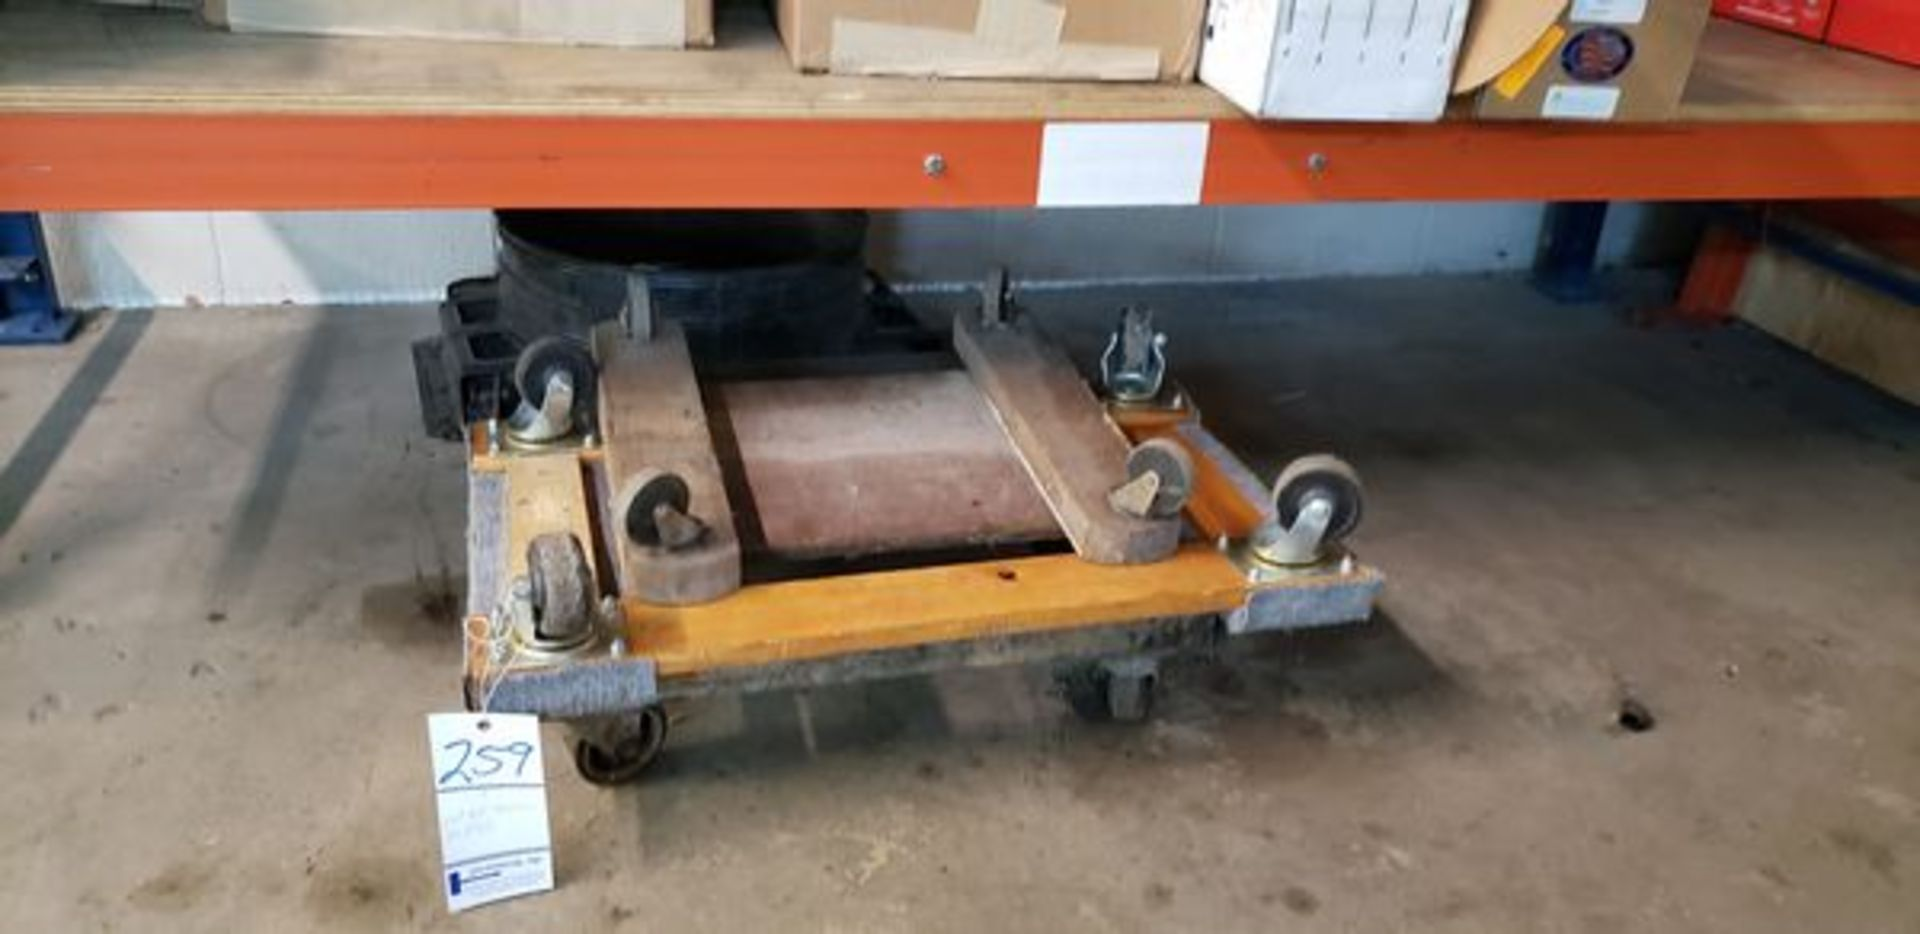 LOT OF 4 WHEEL DOLLIES - Image 2 of 2